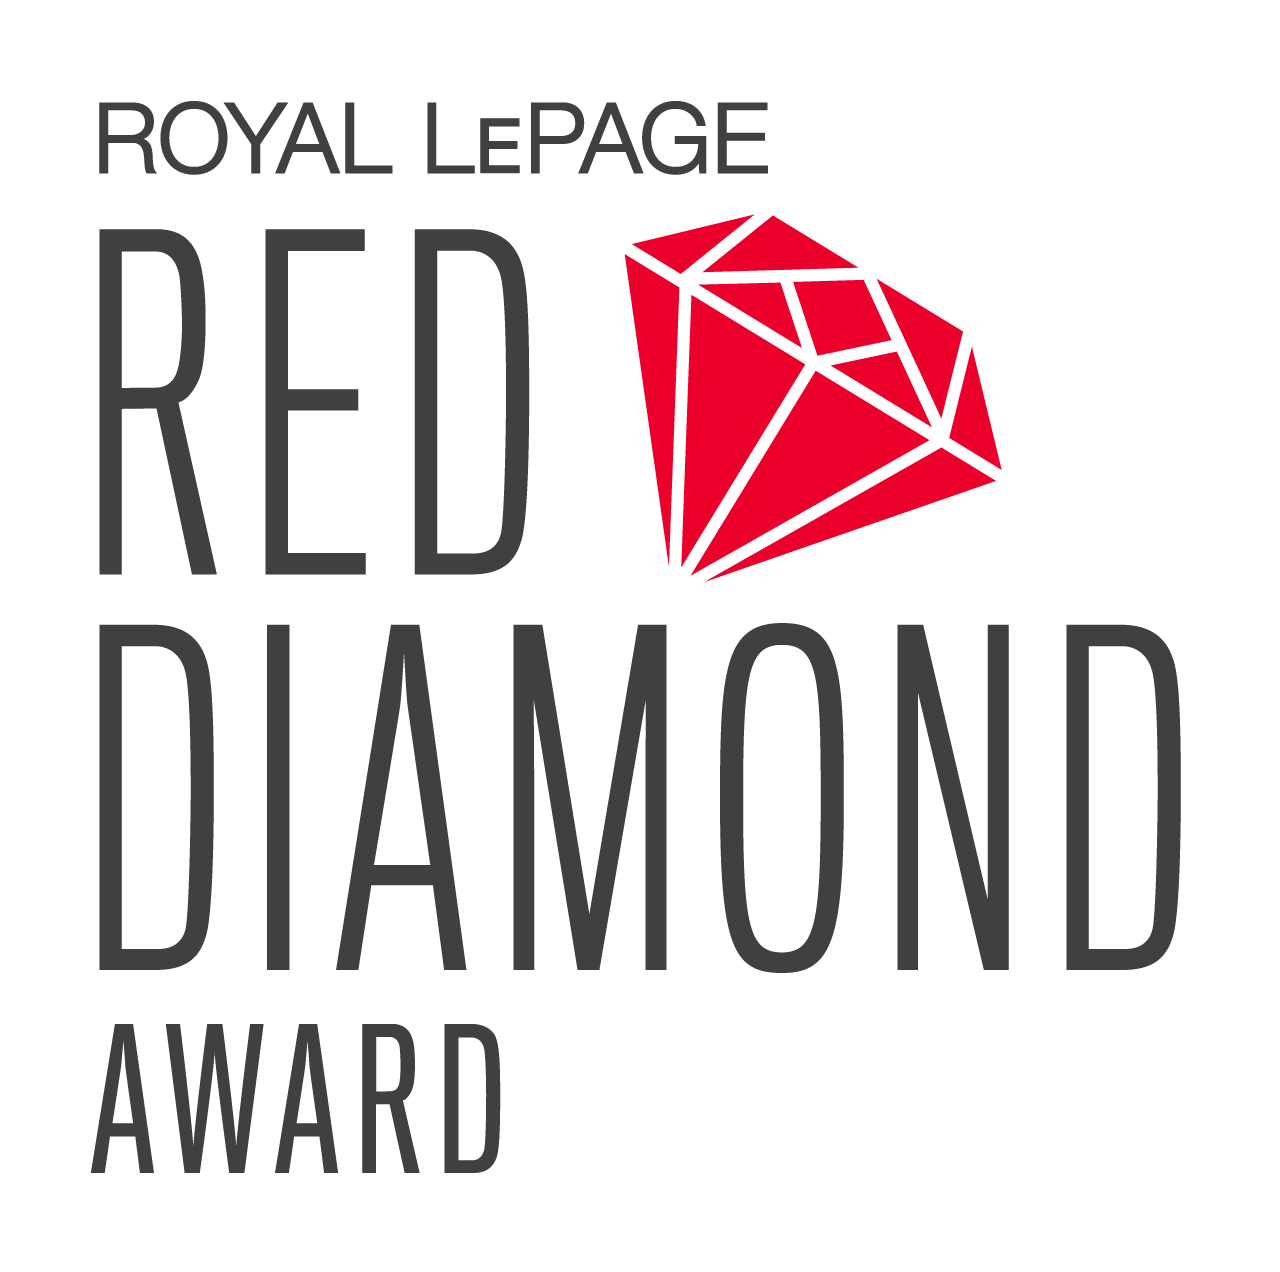 Anabela Serra - Red Diamond Award